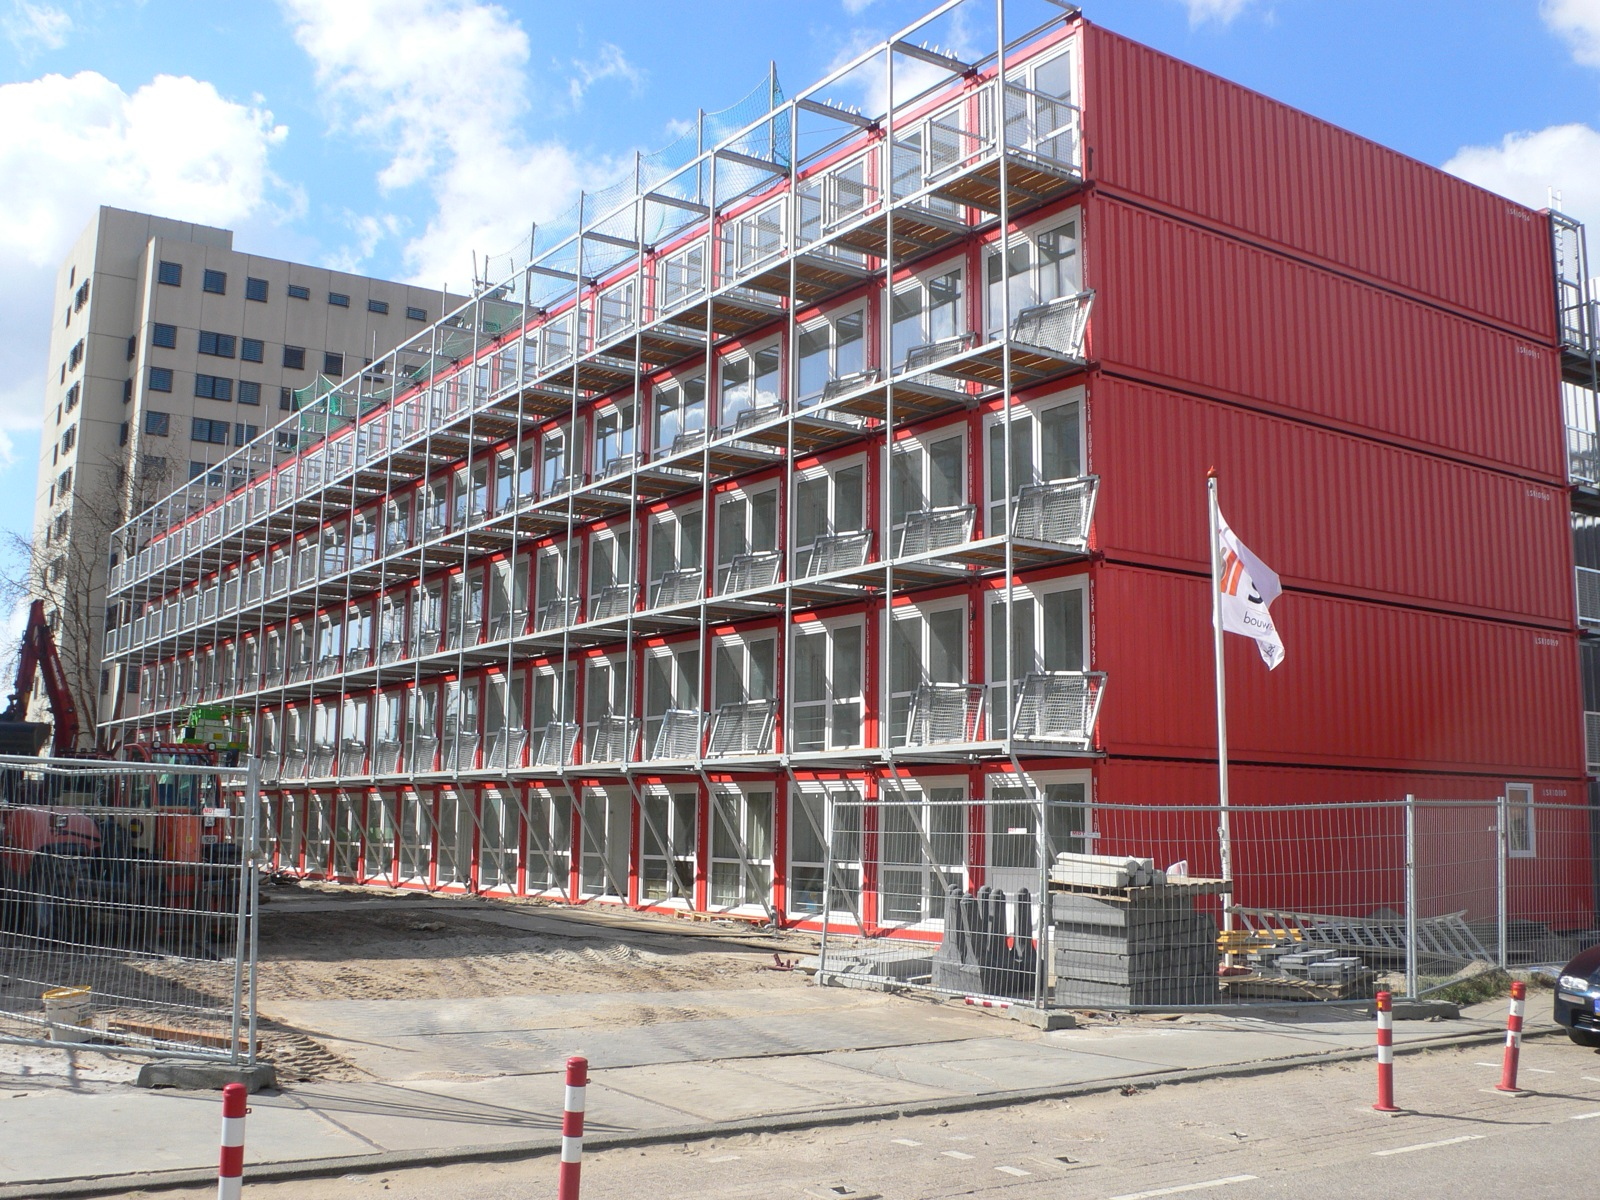 shipping container apartments - amsterdam